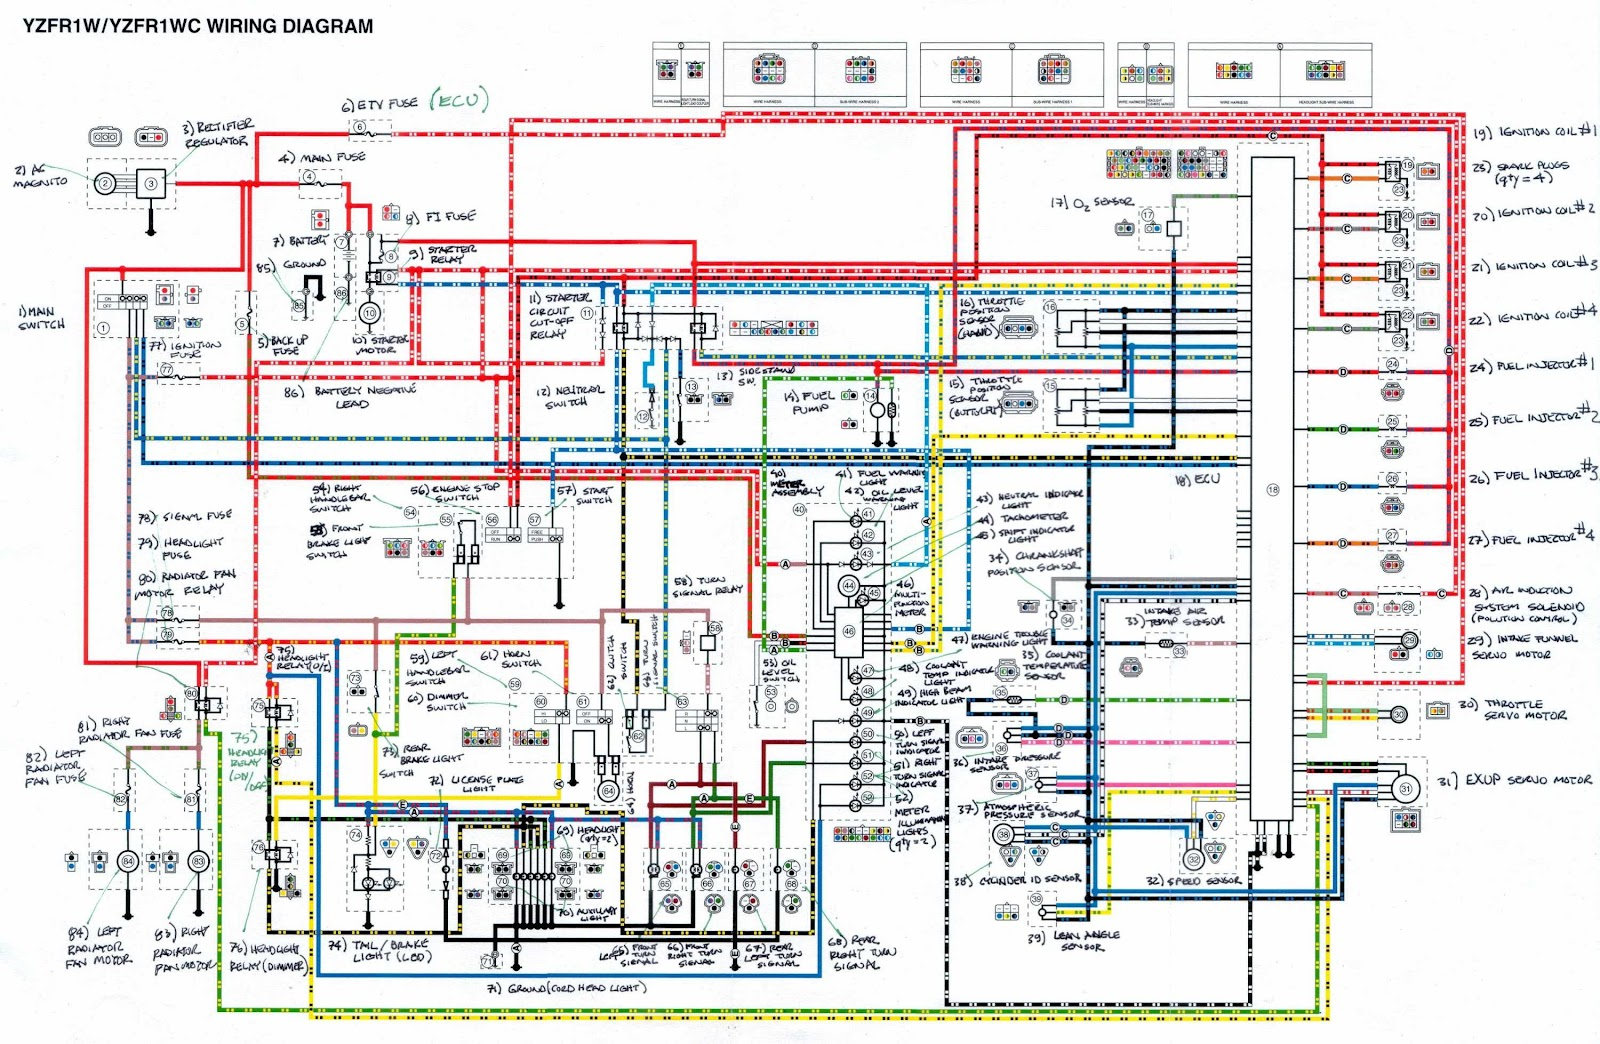 overdrive wiring diagram for 2004 toyota tundra wiring schematic for 2004 r1